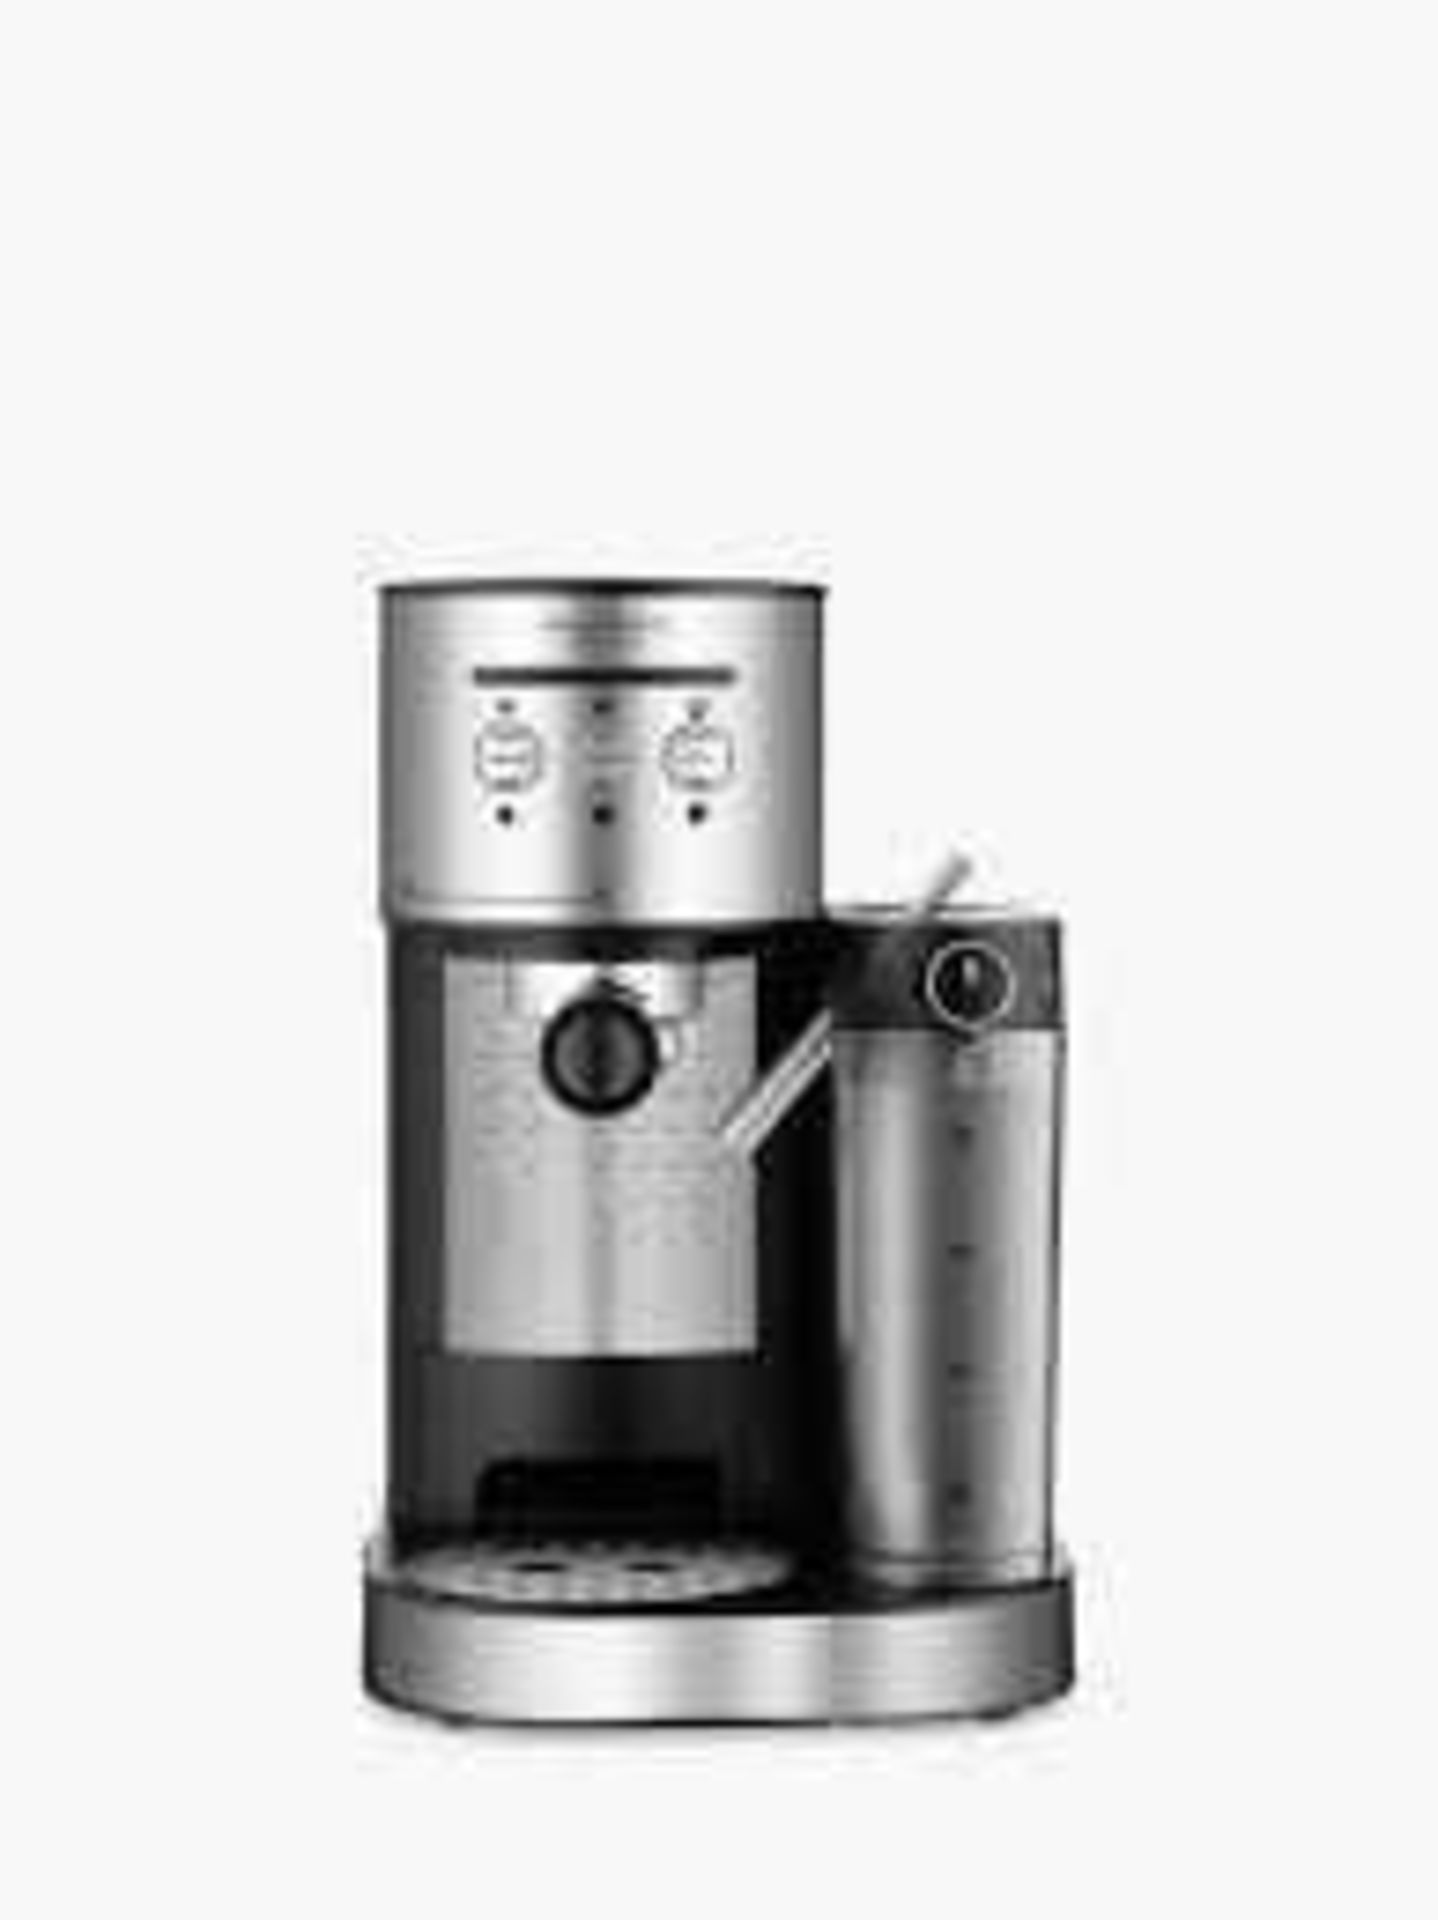 RRP £100 Boxed John Lewis Pump Espresso Coffee Machine With Integrated Milk System